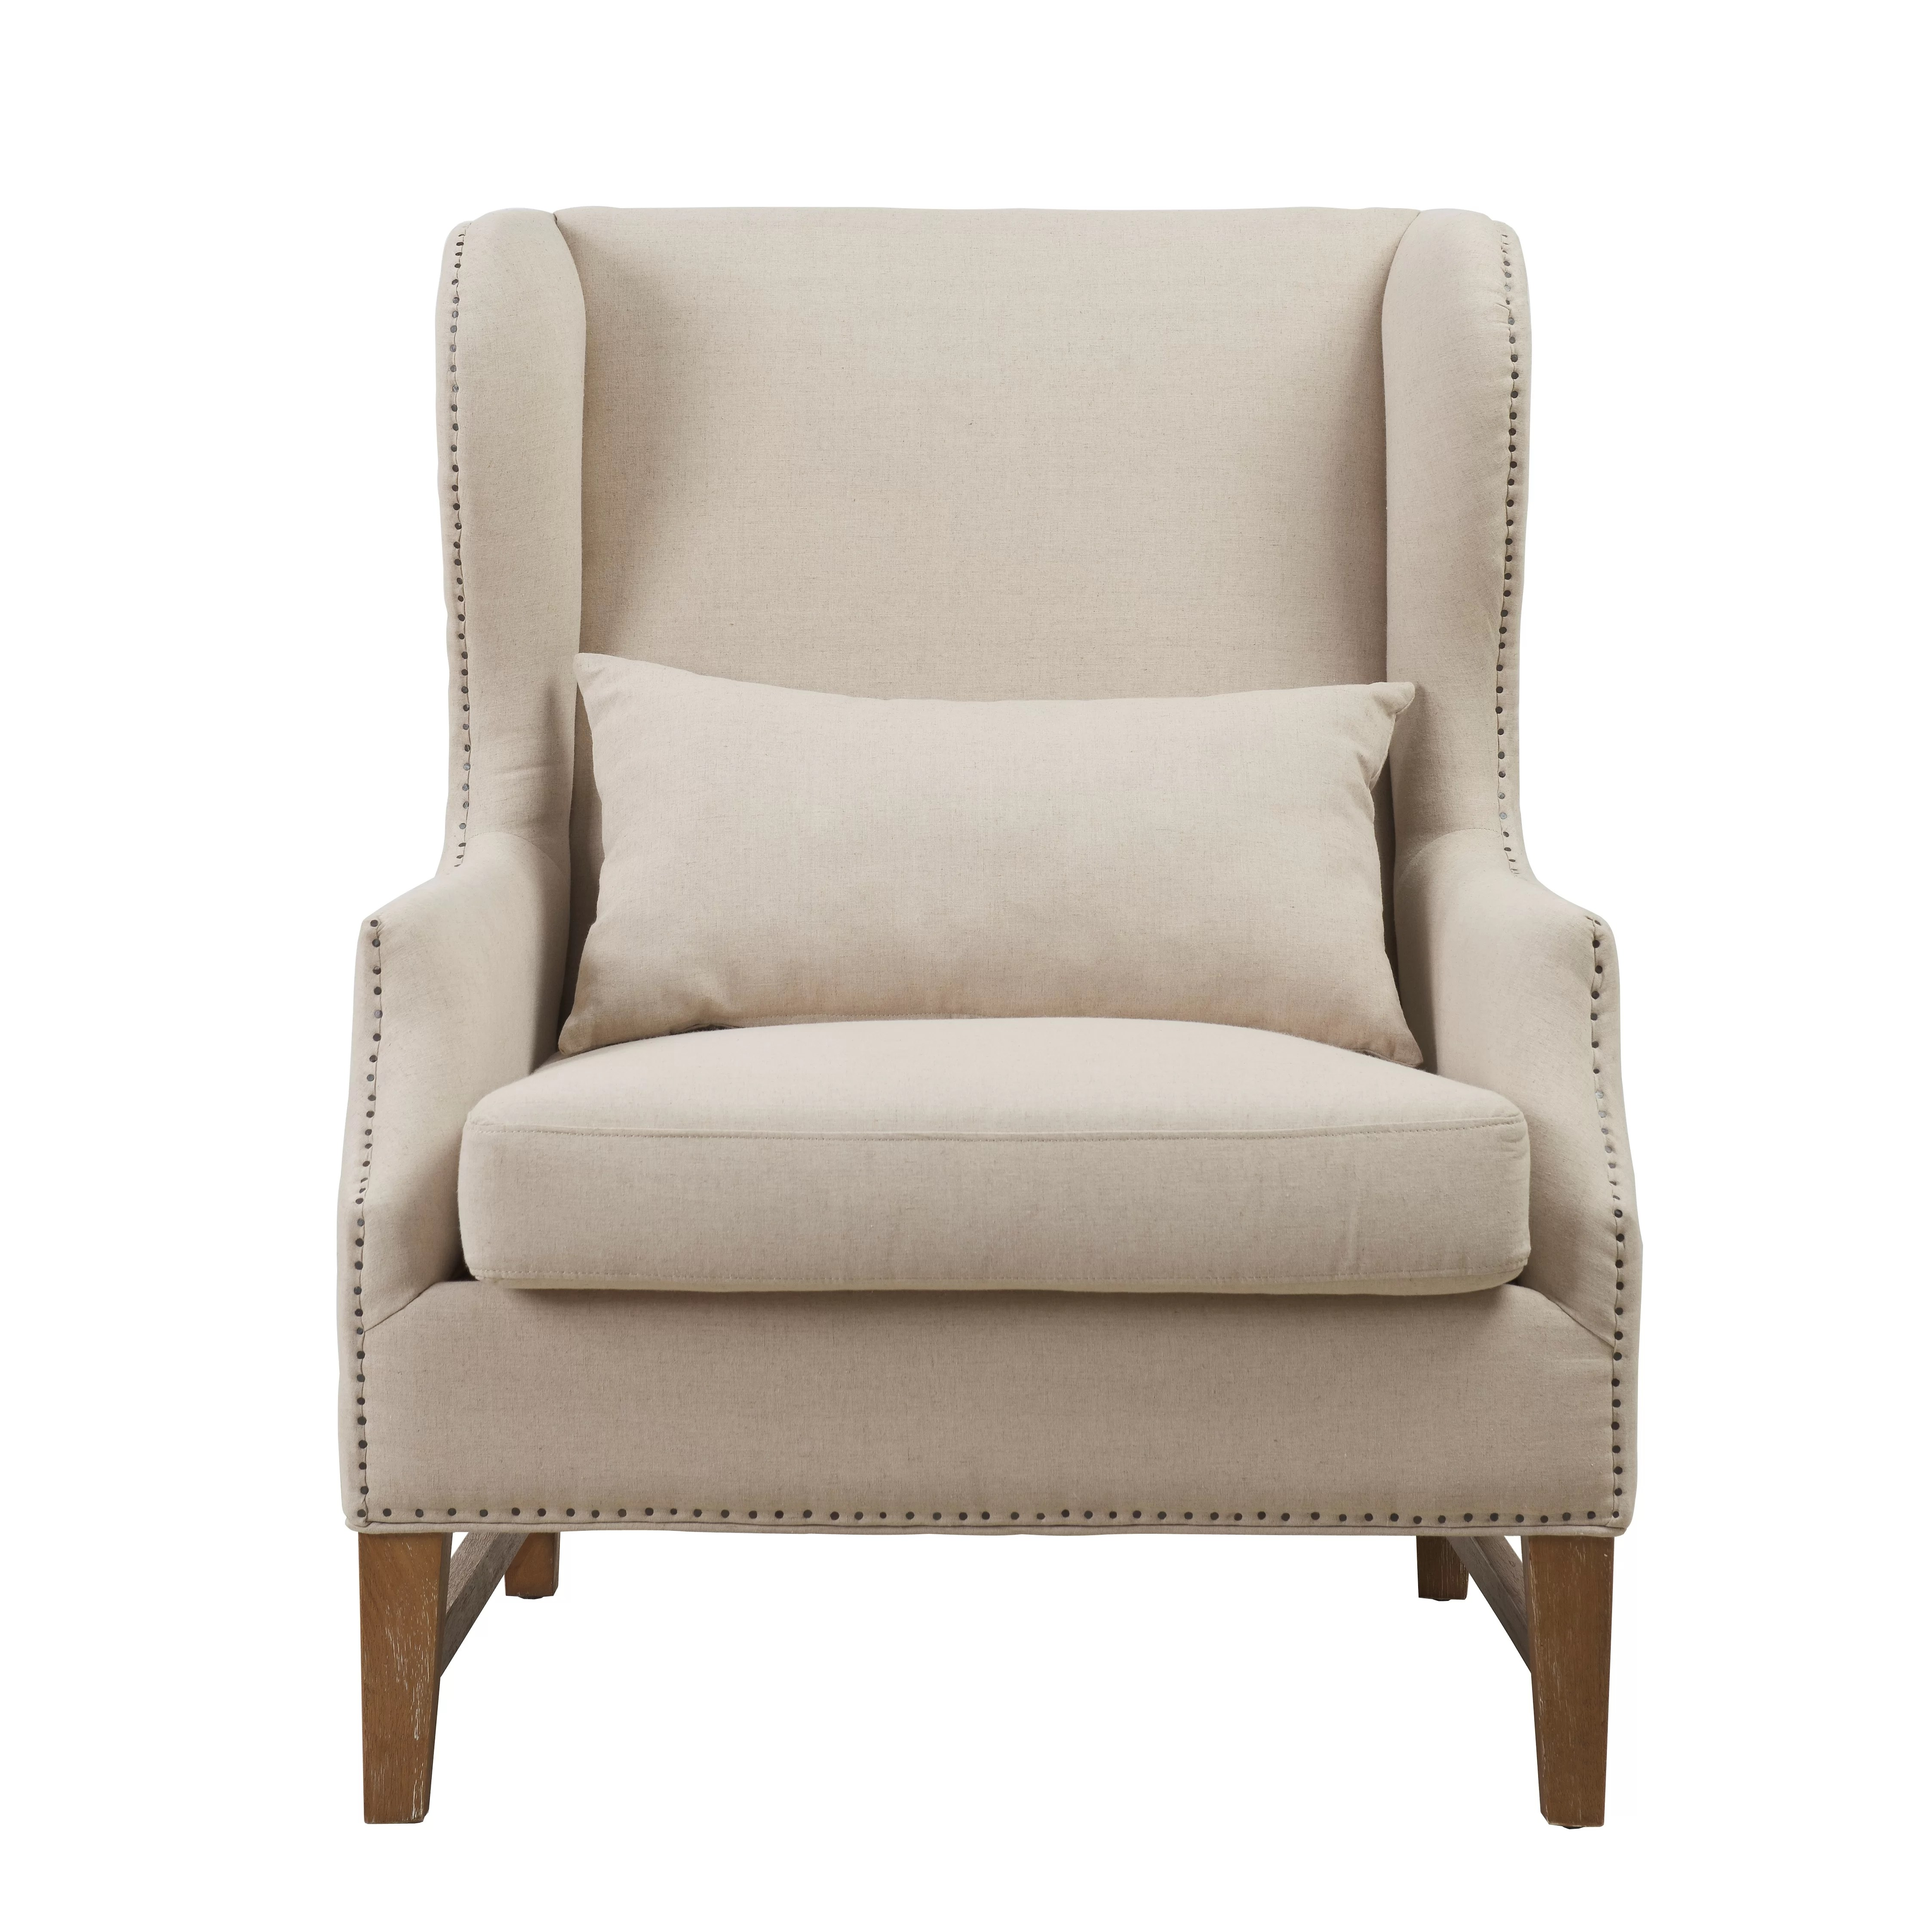 grey wing chair folding lawn chairs at target canora governor arm and reviews wayfair